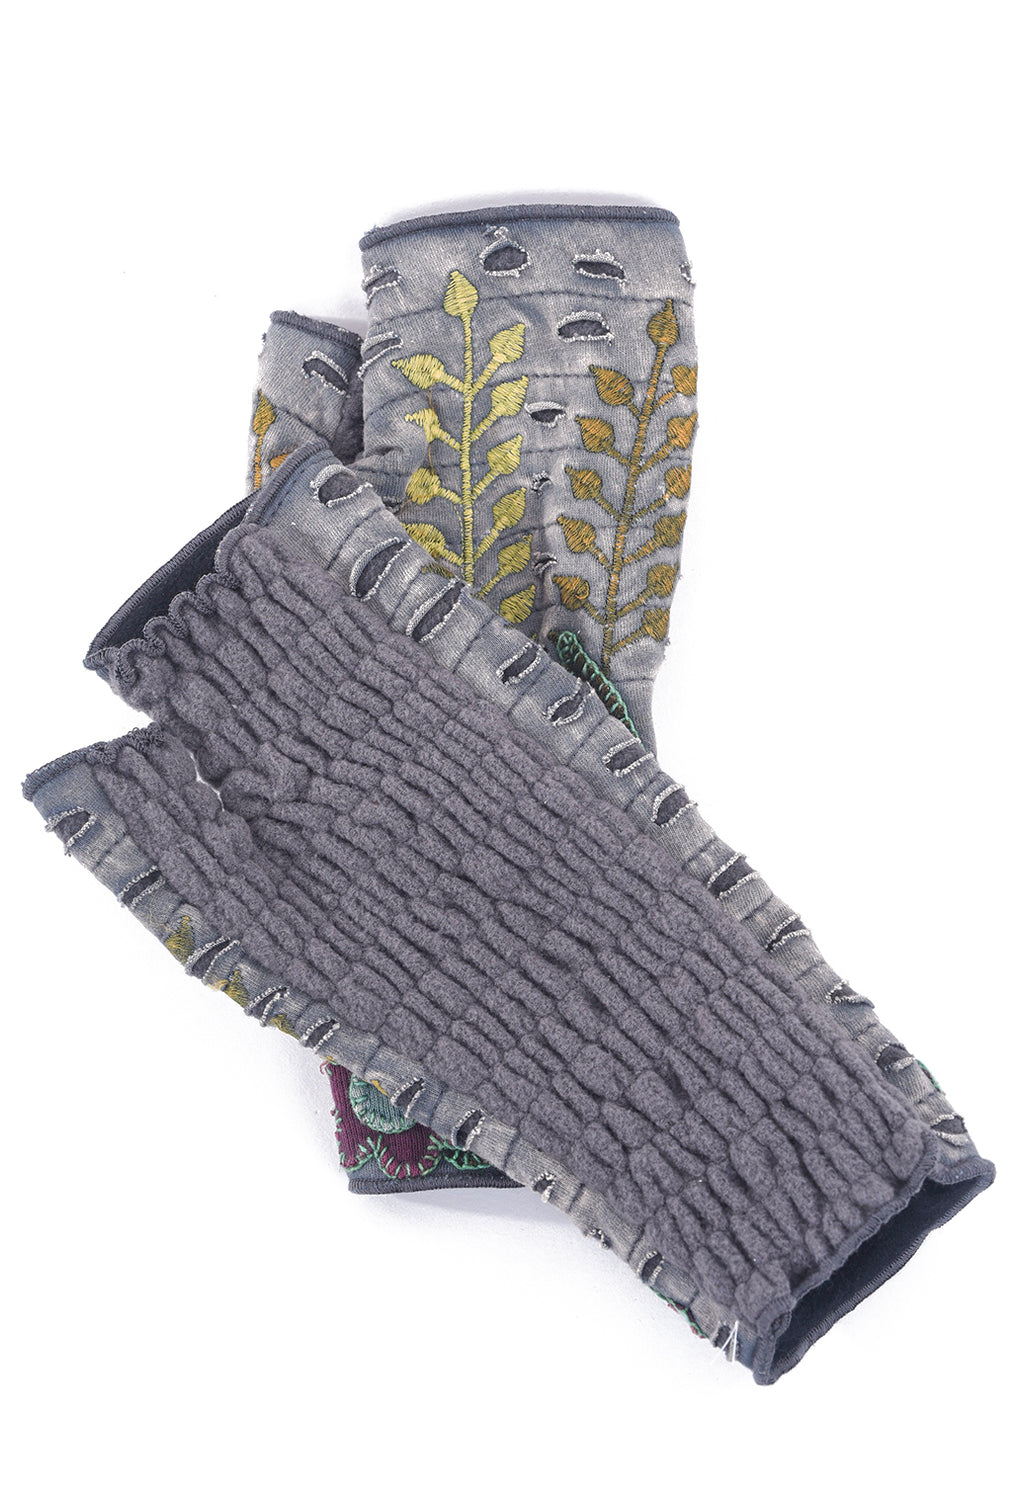 Rising Tide Harvest Fingerless Gloves, Gray One Size Gray